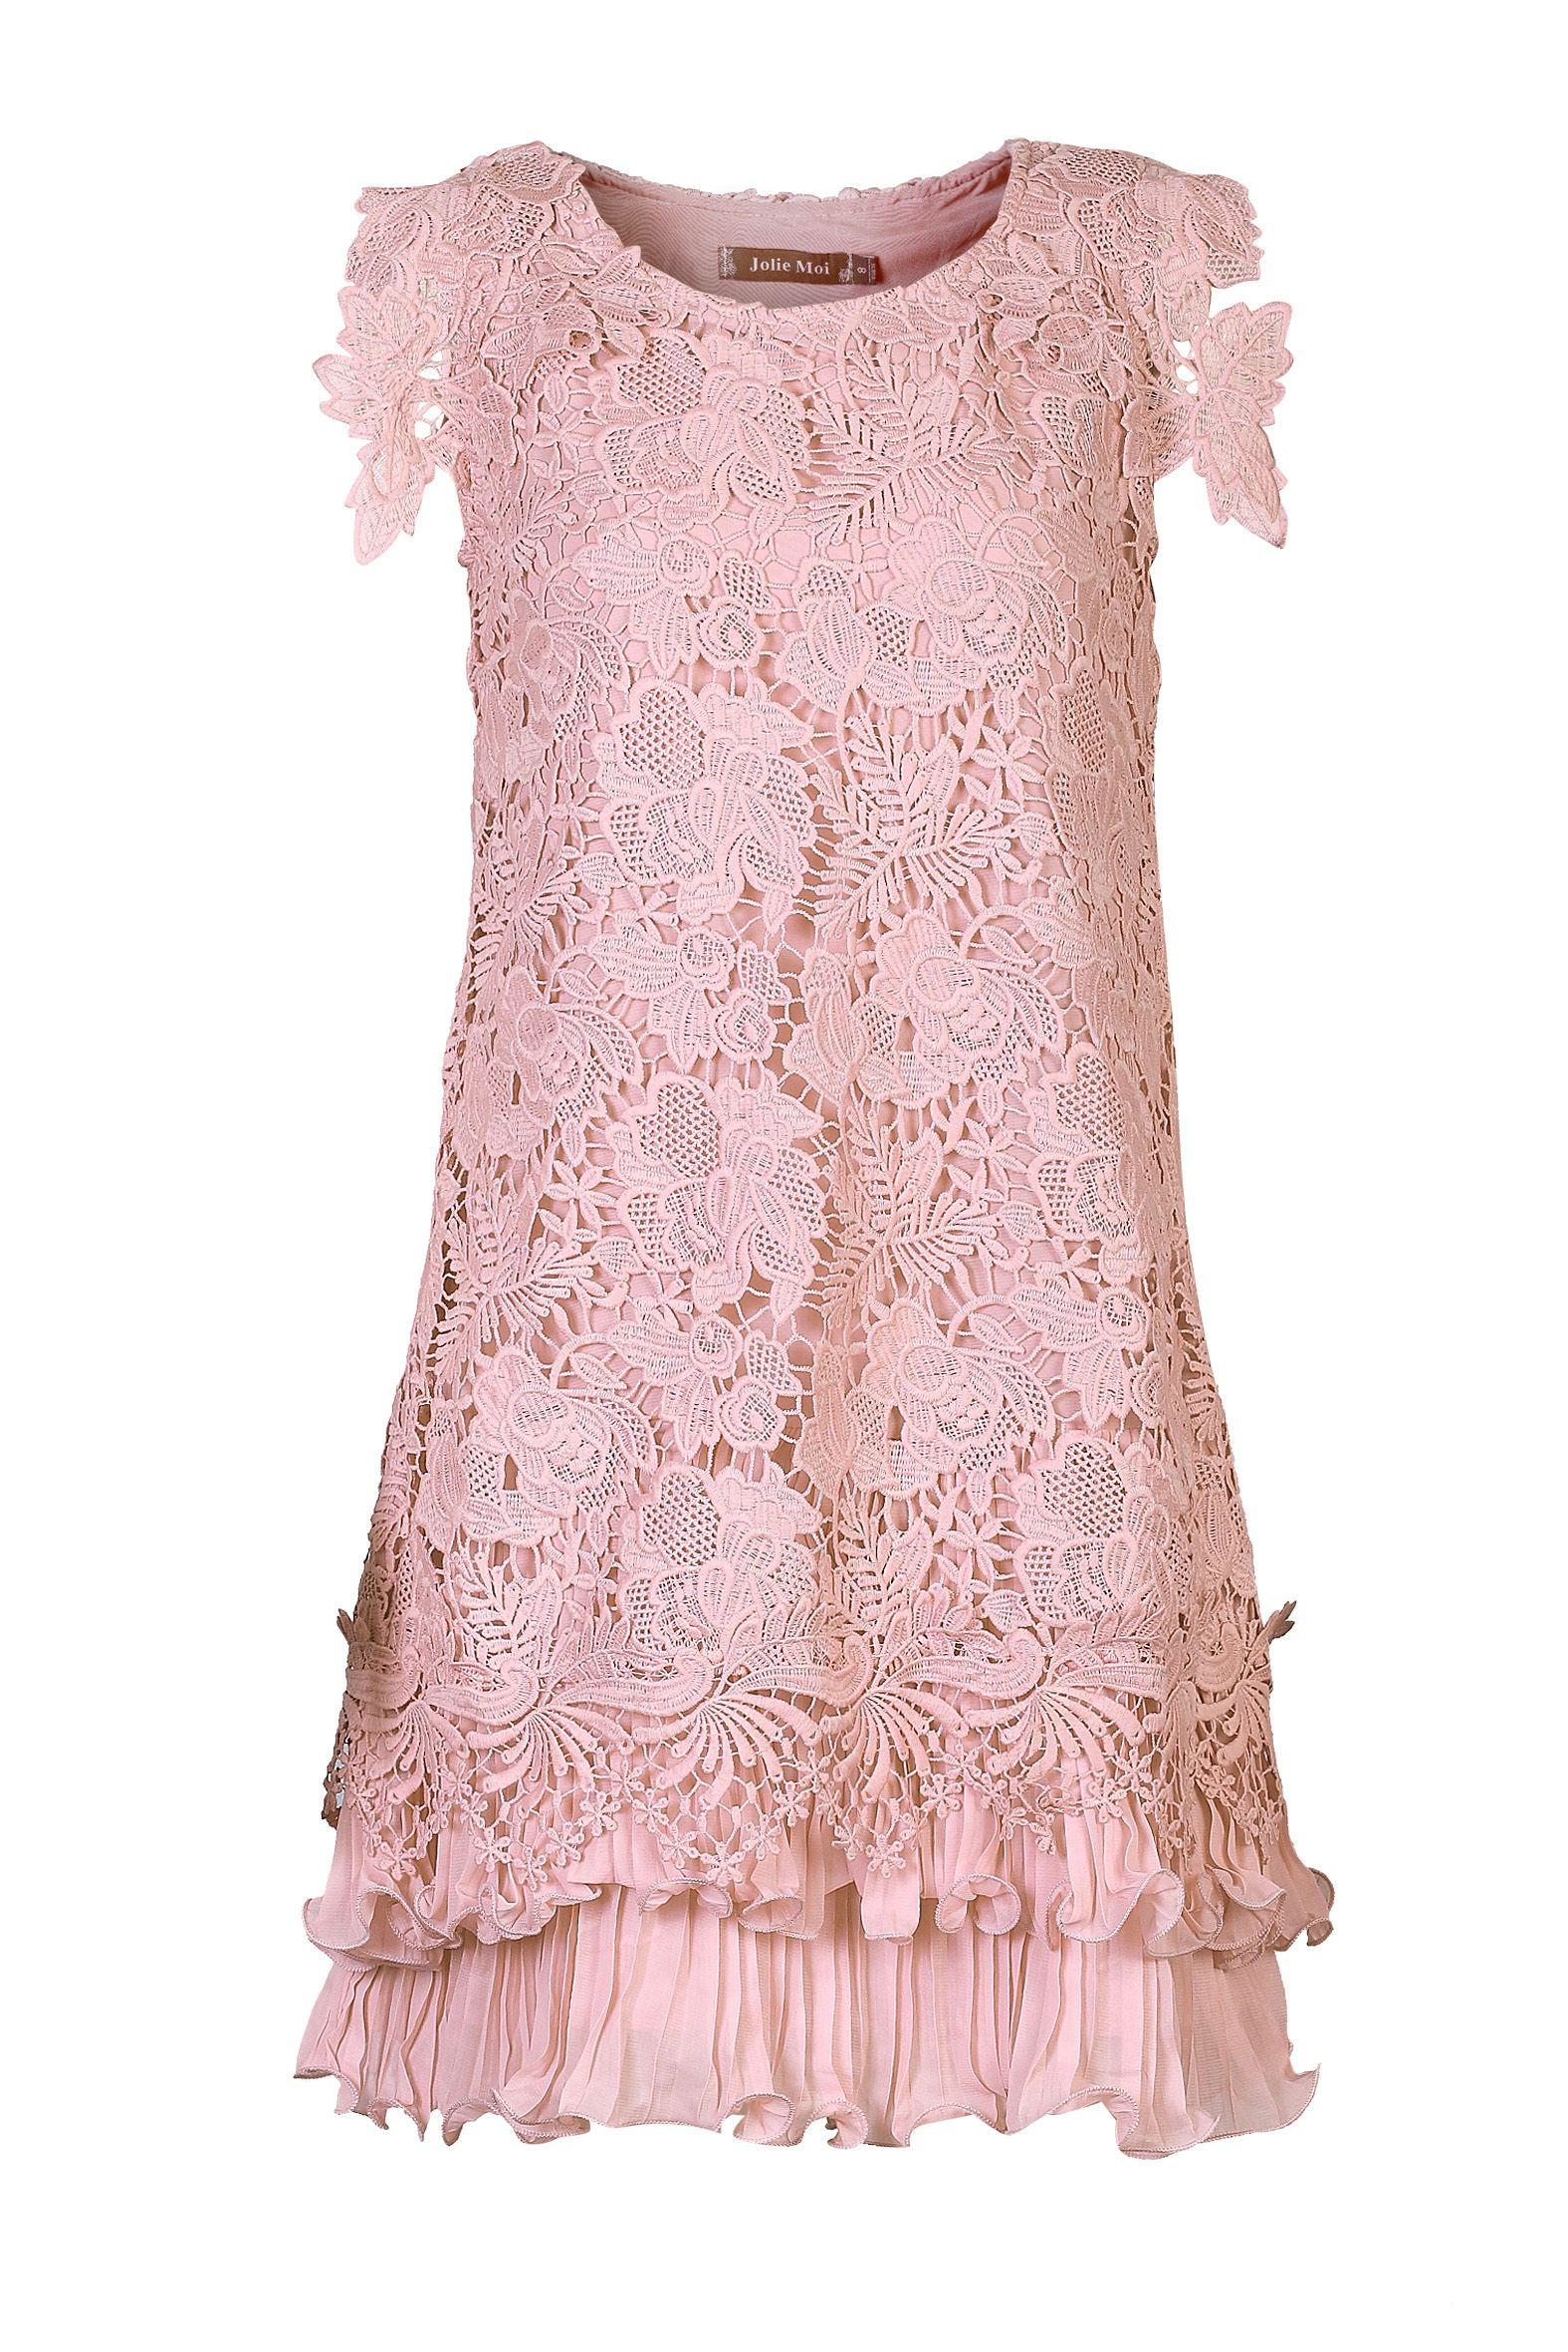 Crochet Lace Dress : Jolie moi Crochet Lace A-line Dress in Pink Lyst